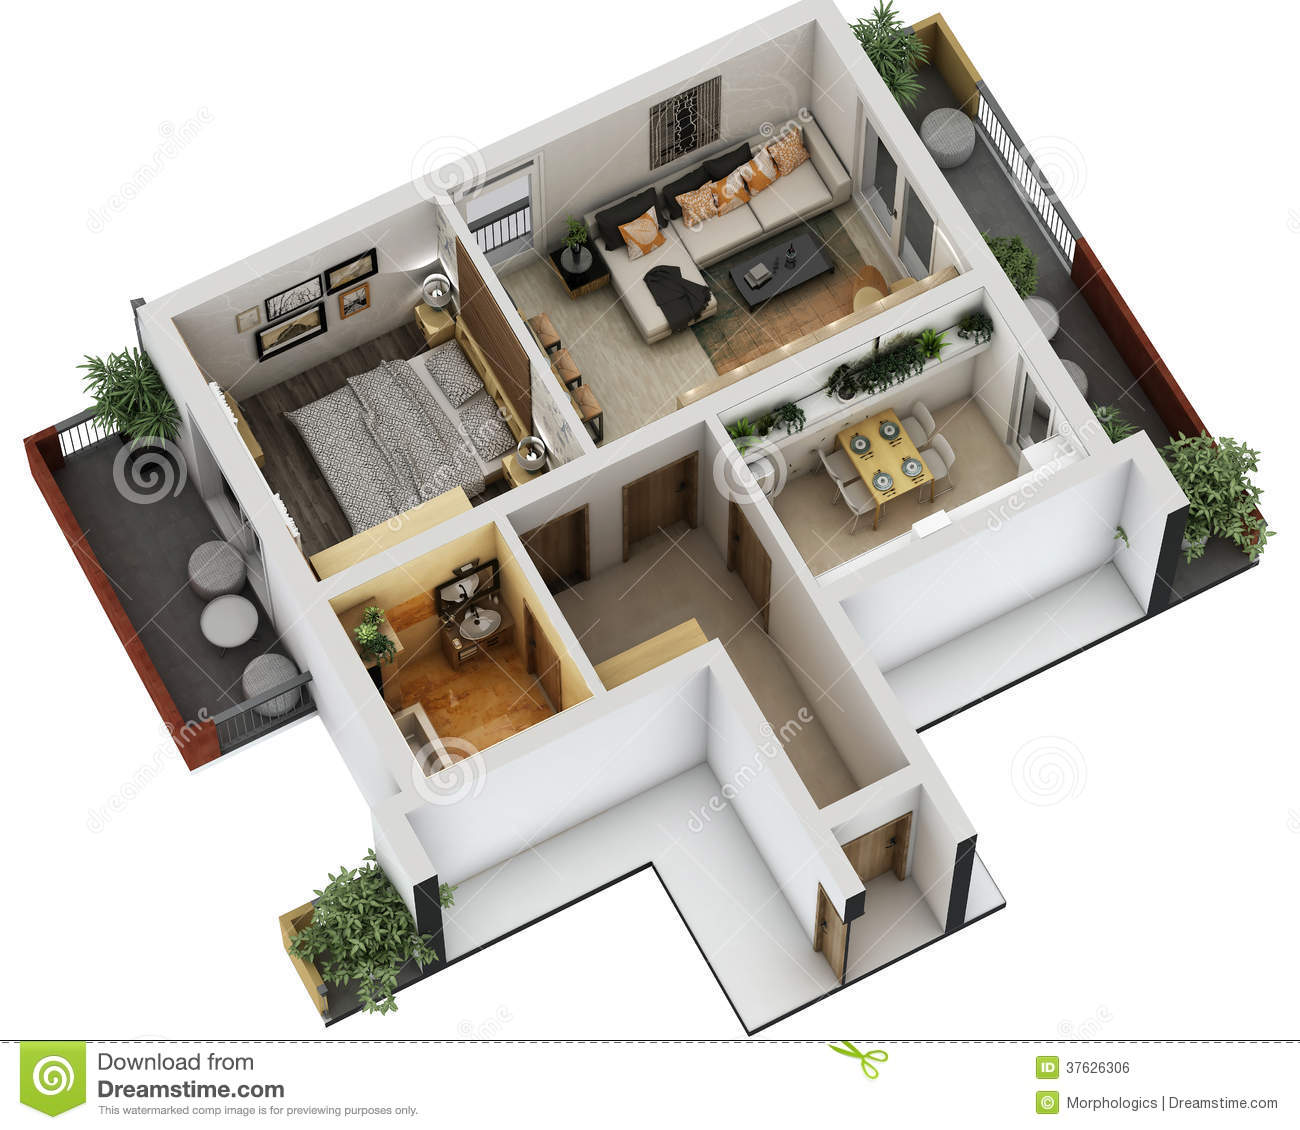 3d Floor Plan Stock Illustration. Illustration Of City